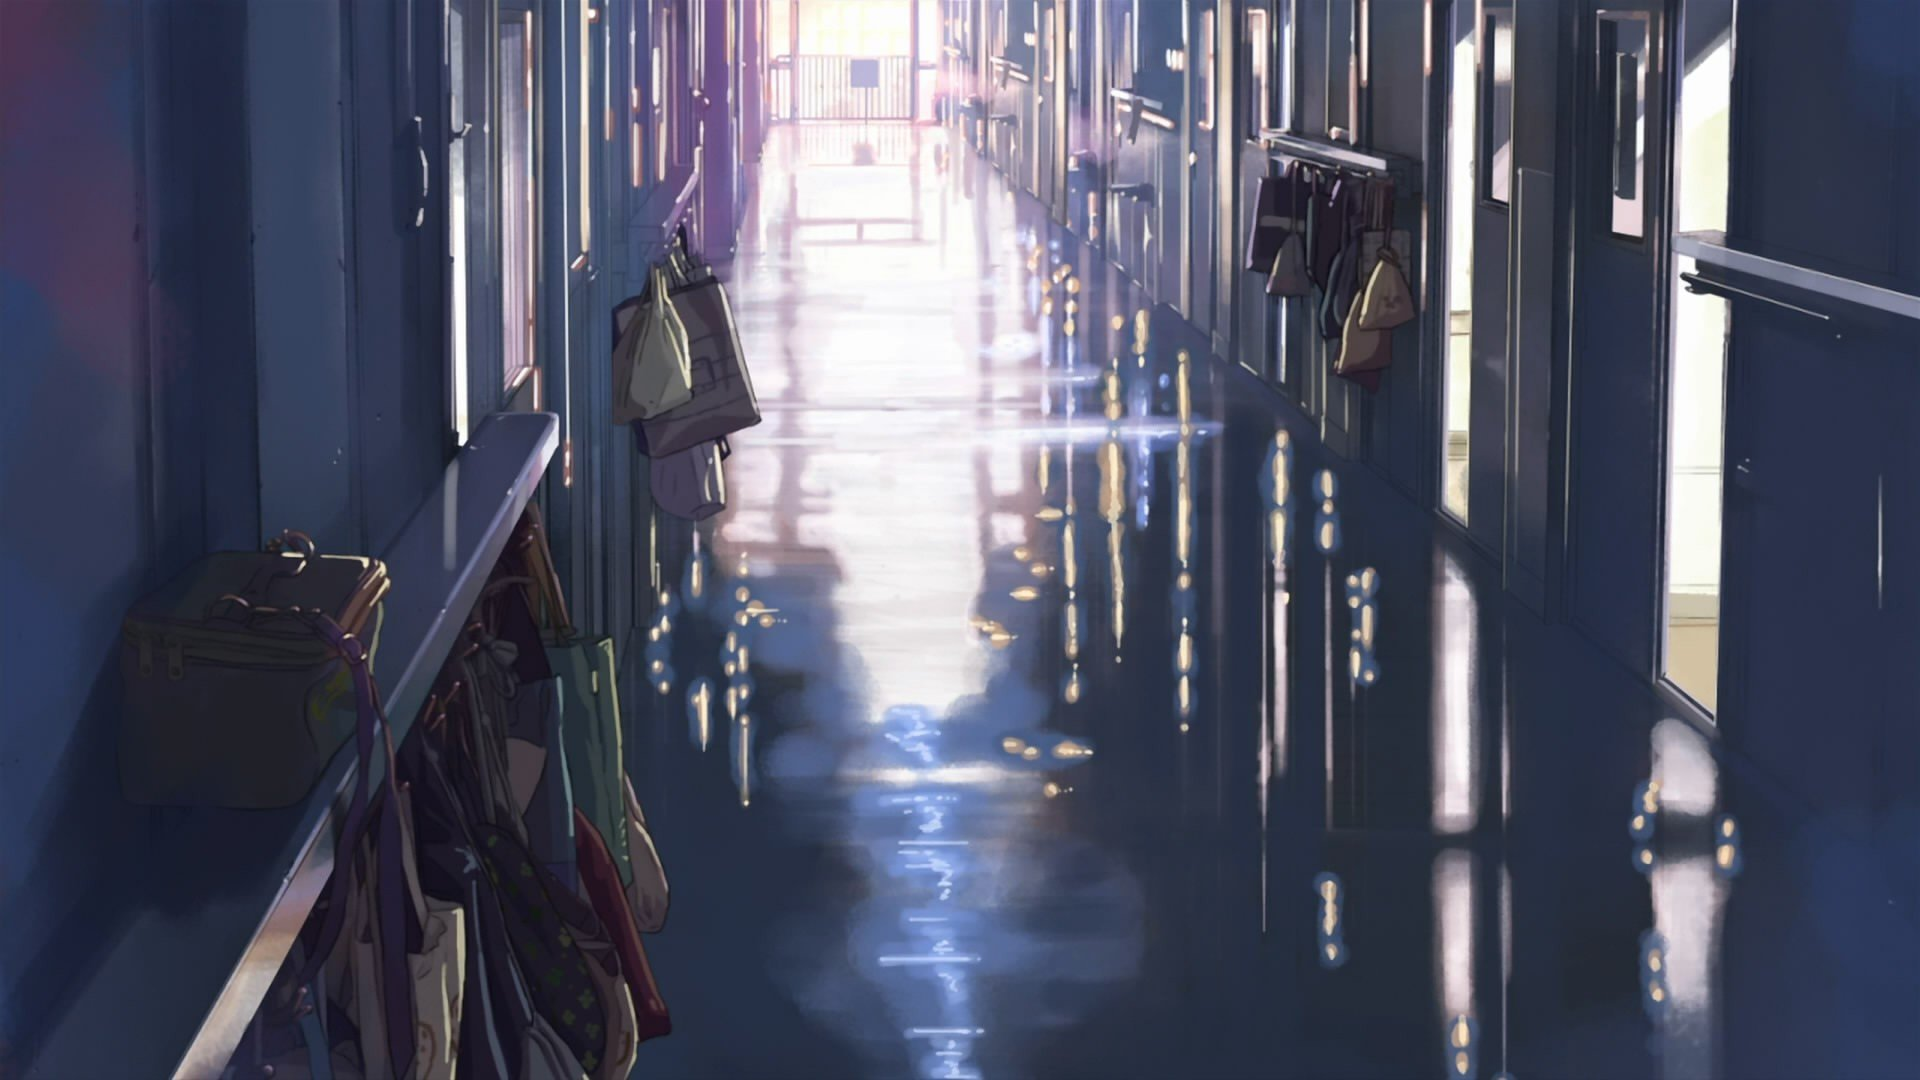 5 Centimeters Per Second Hd Wallpapers Desktop And Mobile Images